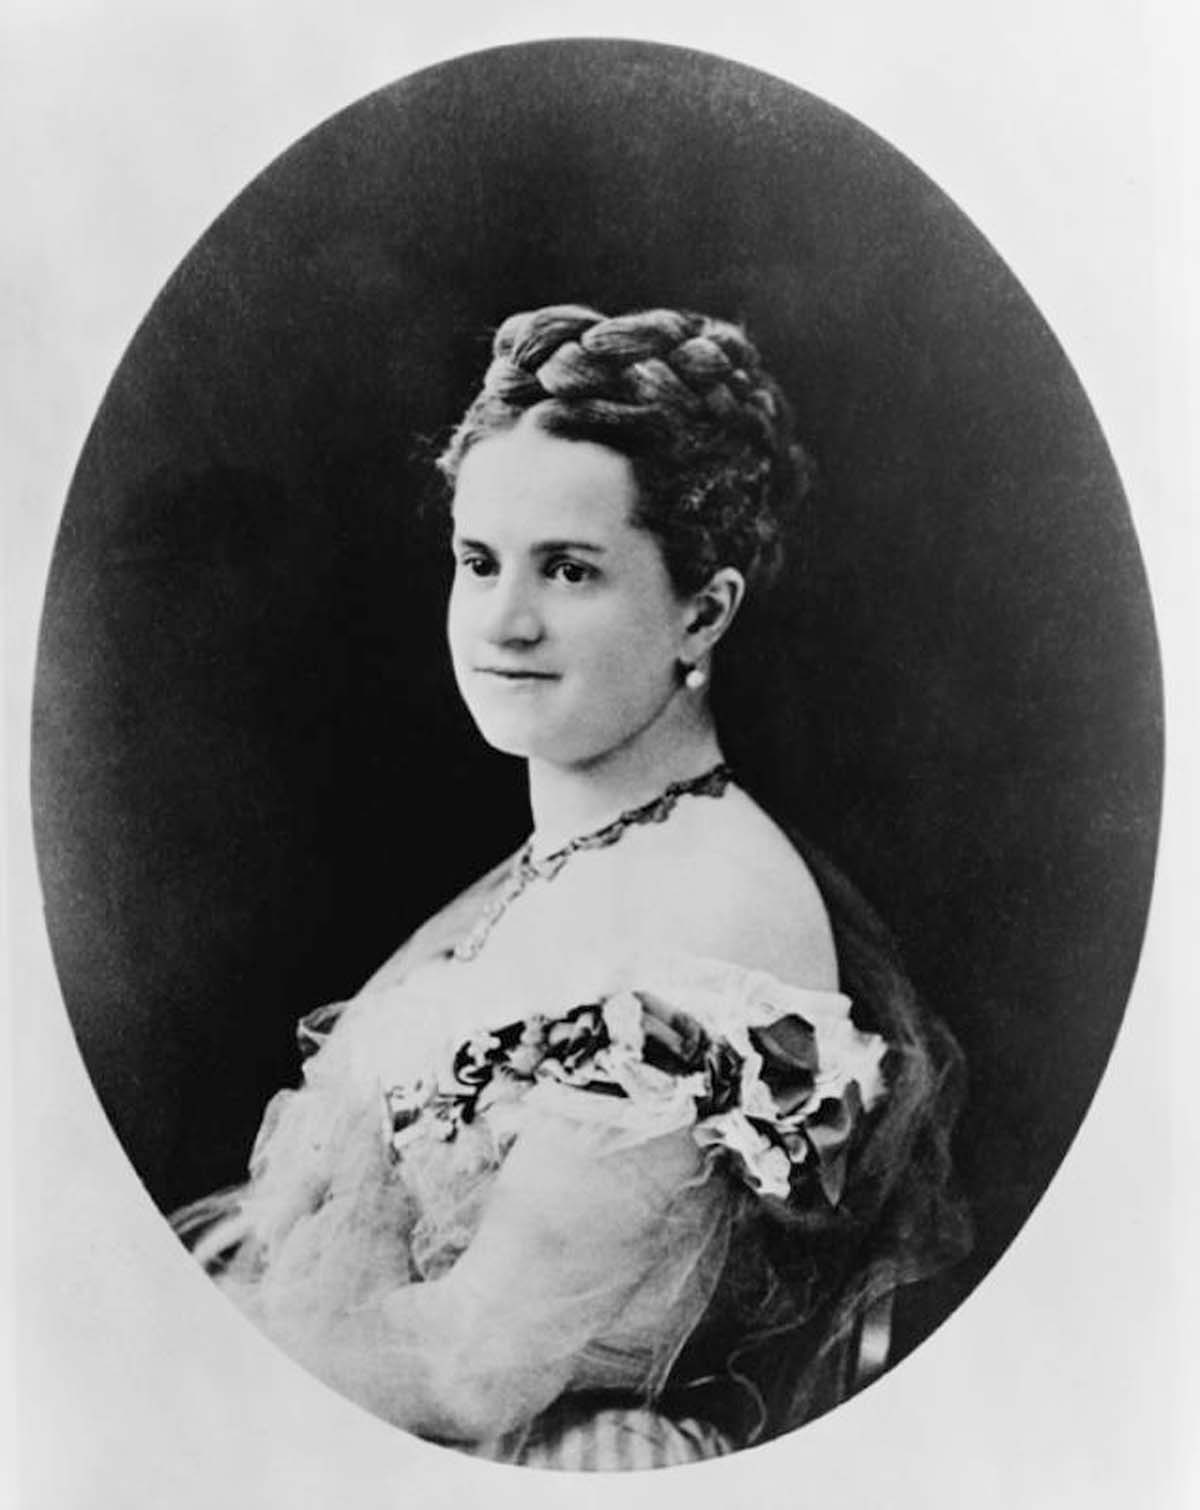 Emily Warren Roebling (1843-1903). Herself an engineer, she succeeded her father-in-law, John Roebling, and her husband, Washington Roebling, as the lead field engineer who completed the Brooklyn Bridge. Library of Congress/Everett Collection.